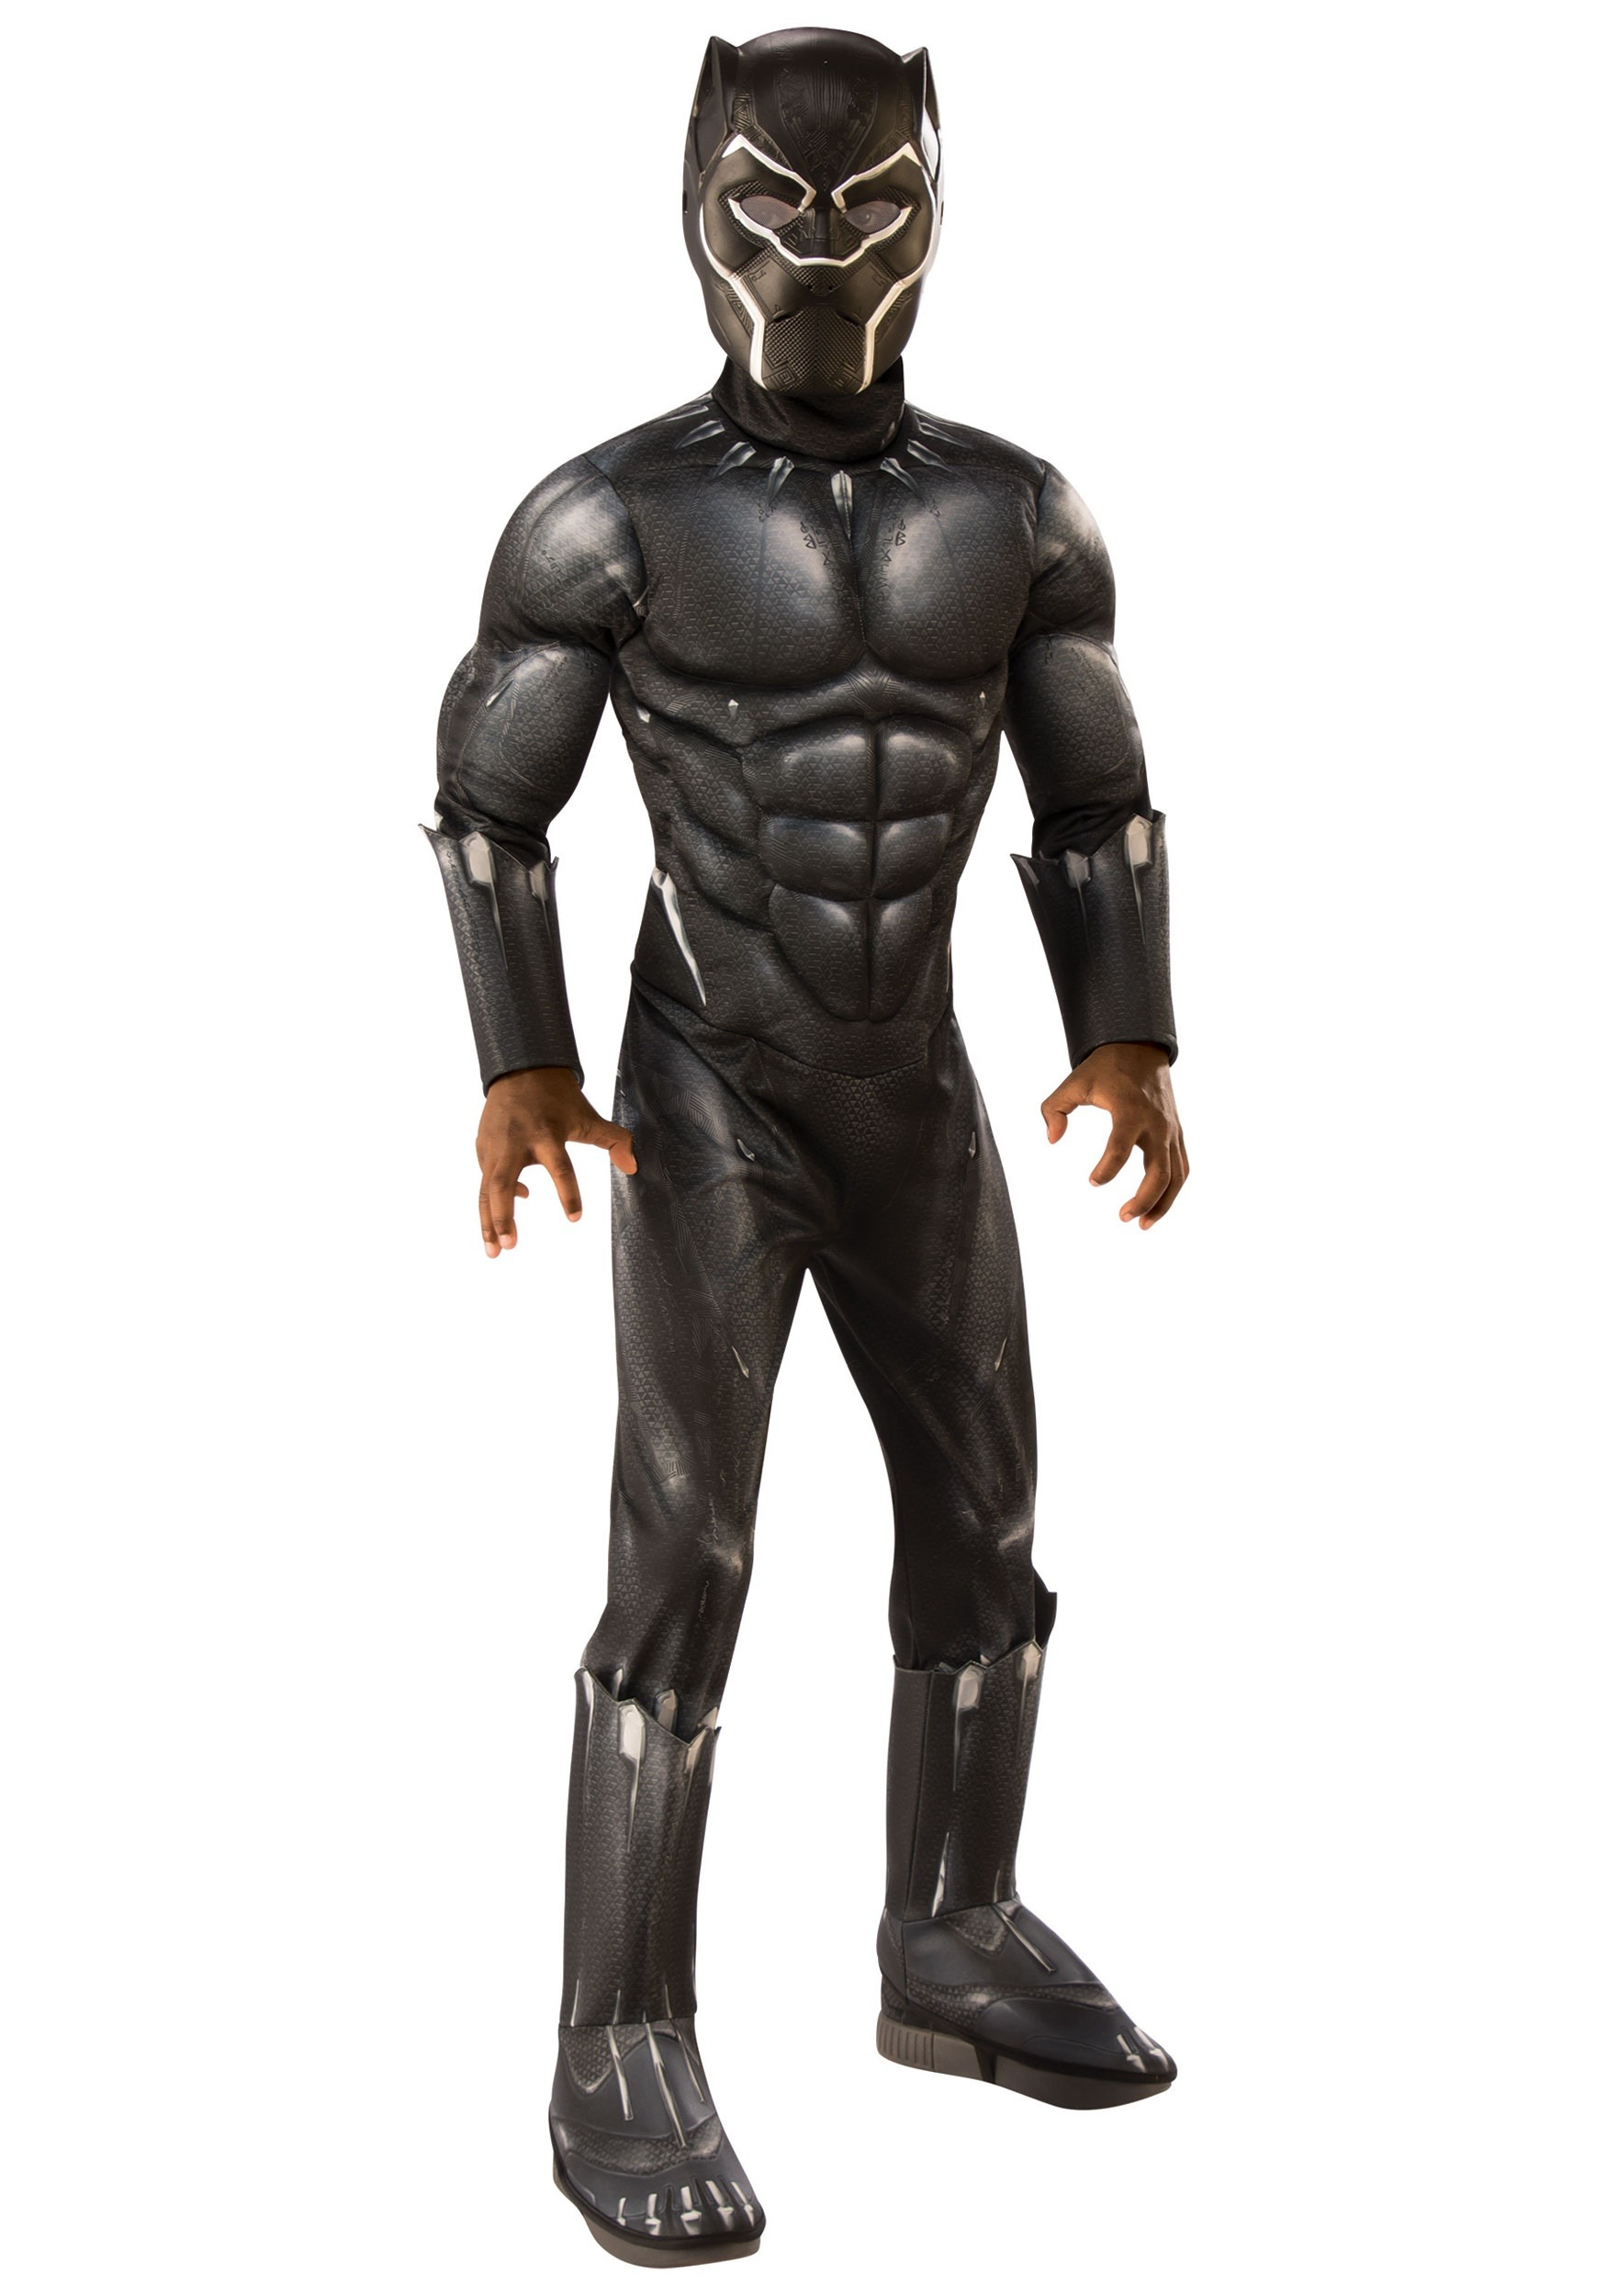 Black Panther Halloween Costumes 2020 Deluxe Black Panther Costume for Children